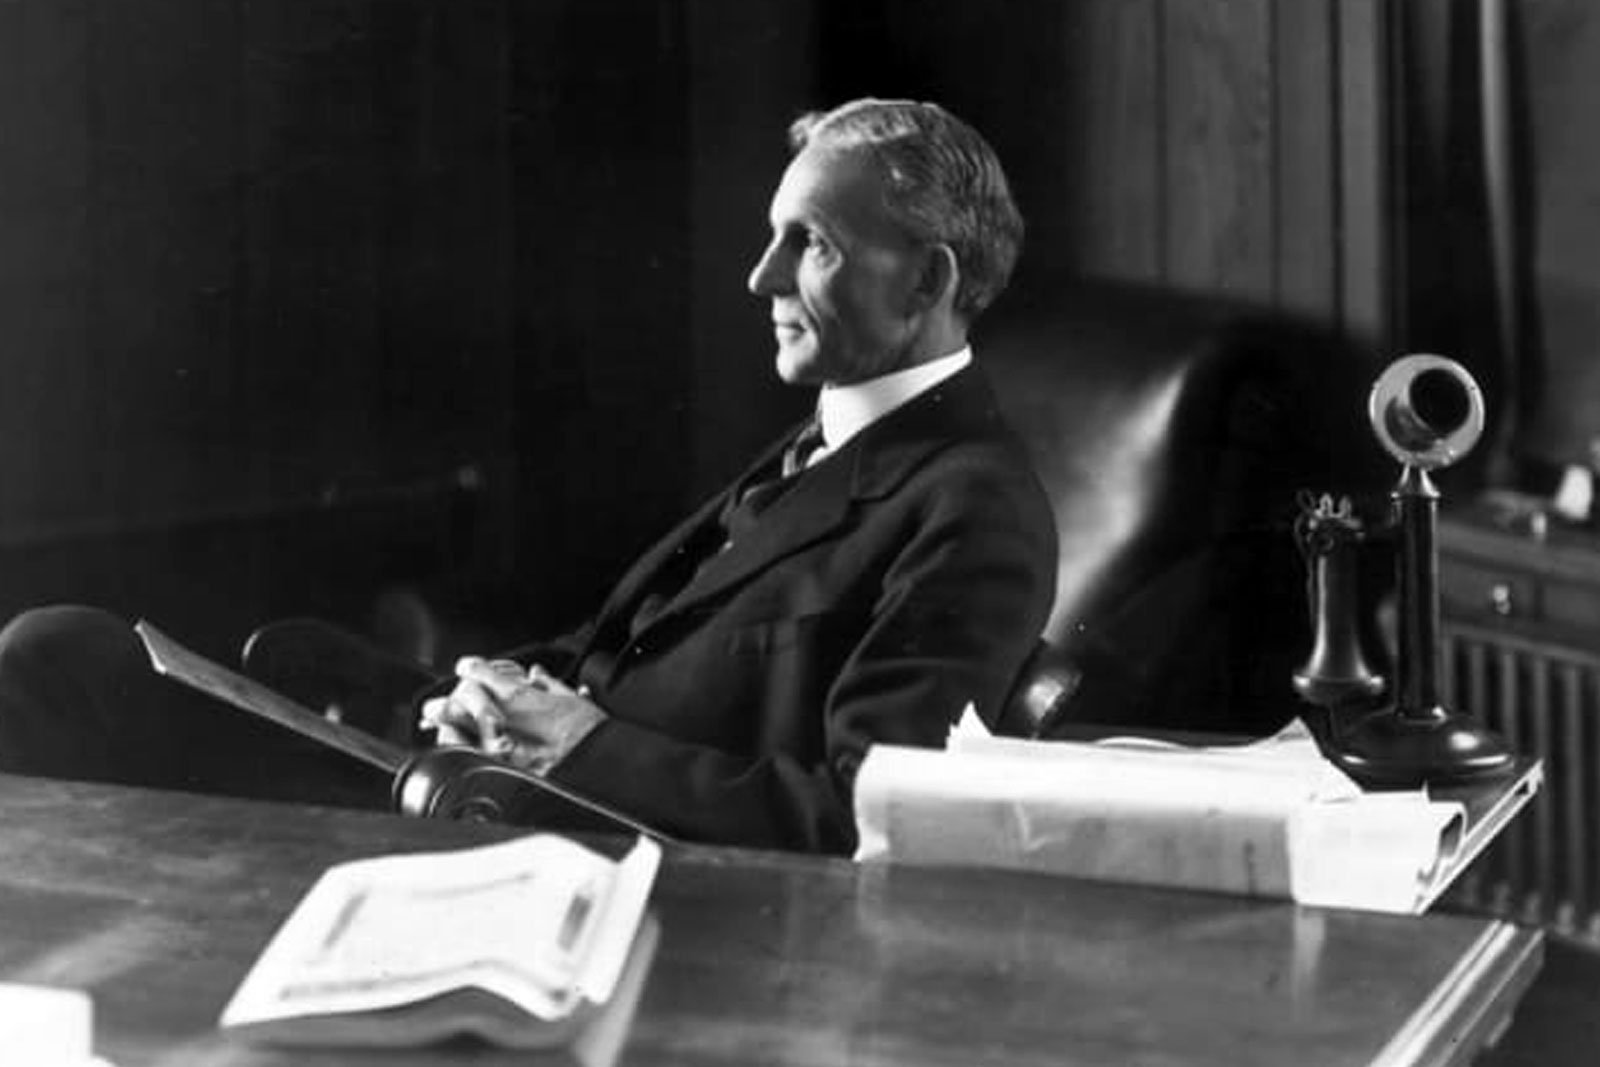 Meet Henry Ford. The man that created your life…